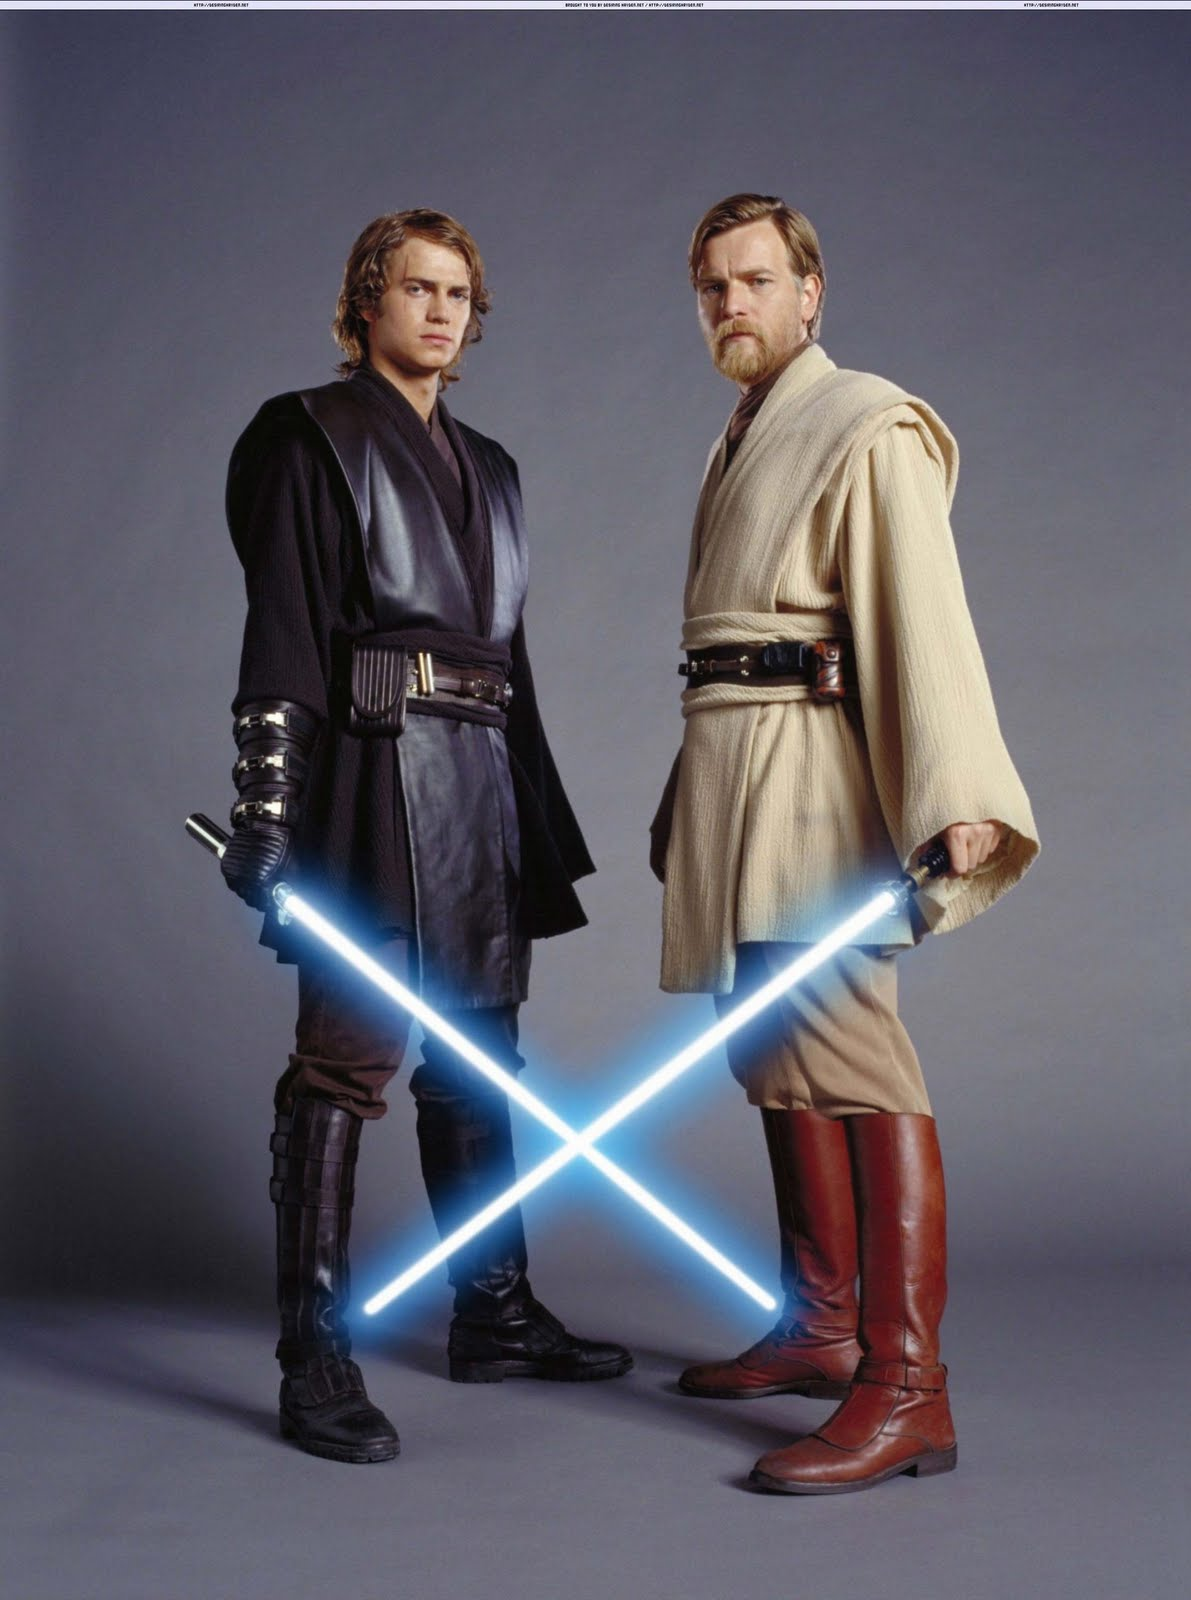 Free Download Star Wars Episode 3 Anakin Skywalker Wallpaper Picture Wallpaper 1191x1600 For Your Desktop Mobile Tablet Explore 49 Star Wars Wallpaper Anakin Star Wars Finn Wallpaper Star Wars